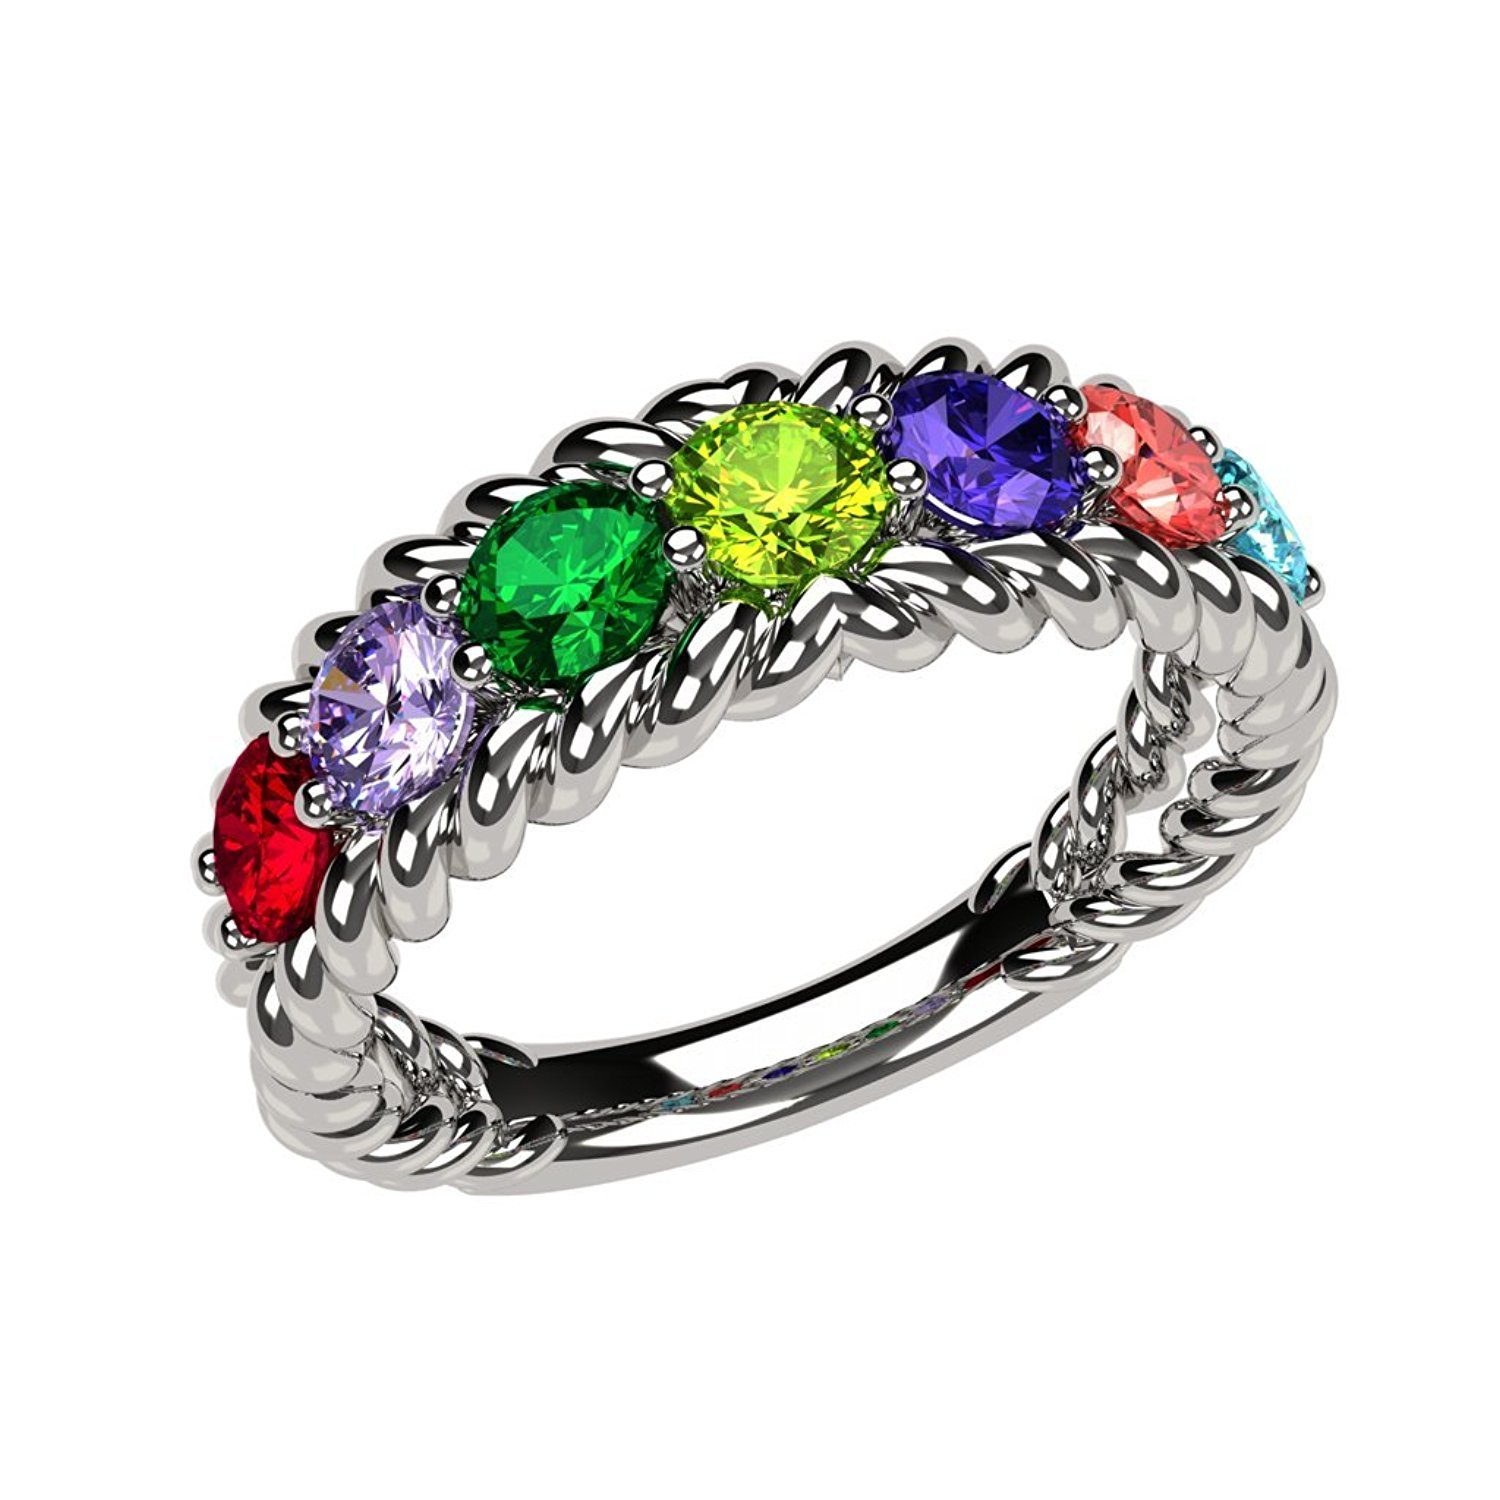 NANA Rope Mothers Ring 1 to 10 Simulated Birthstones- 10k White Gold - Size 5